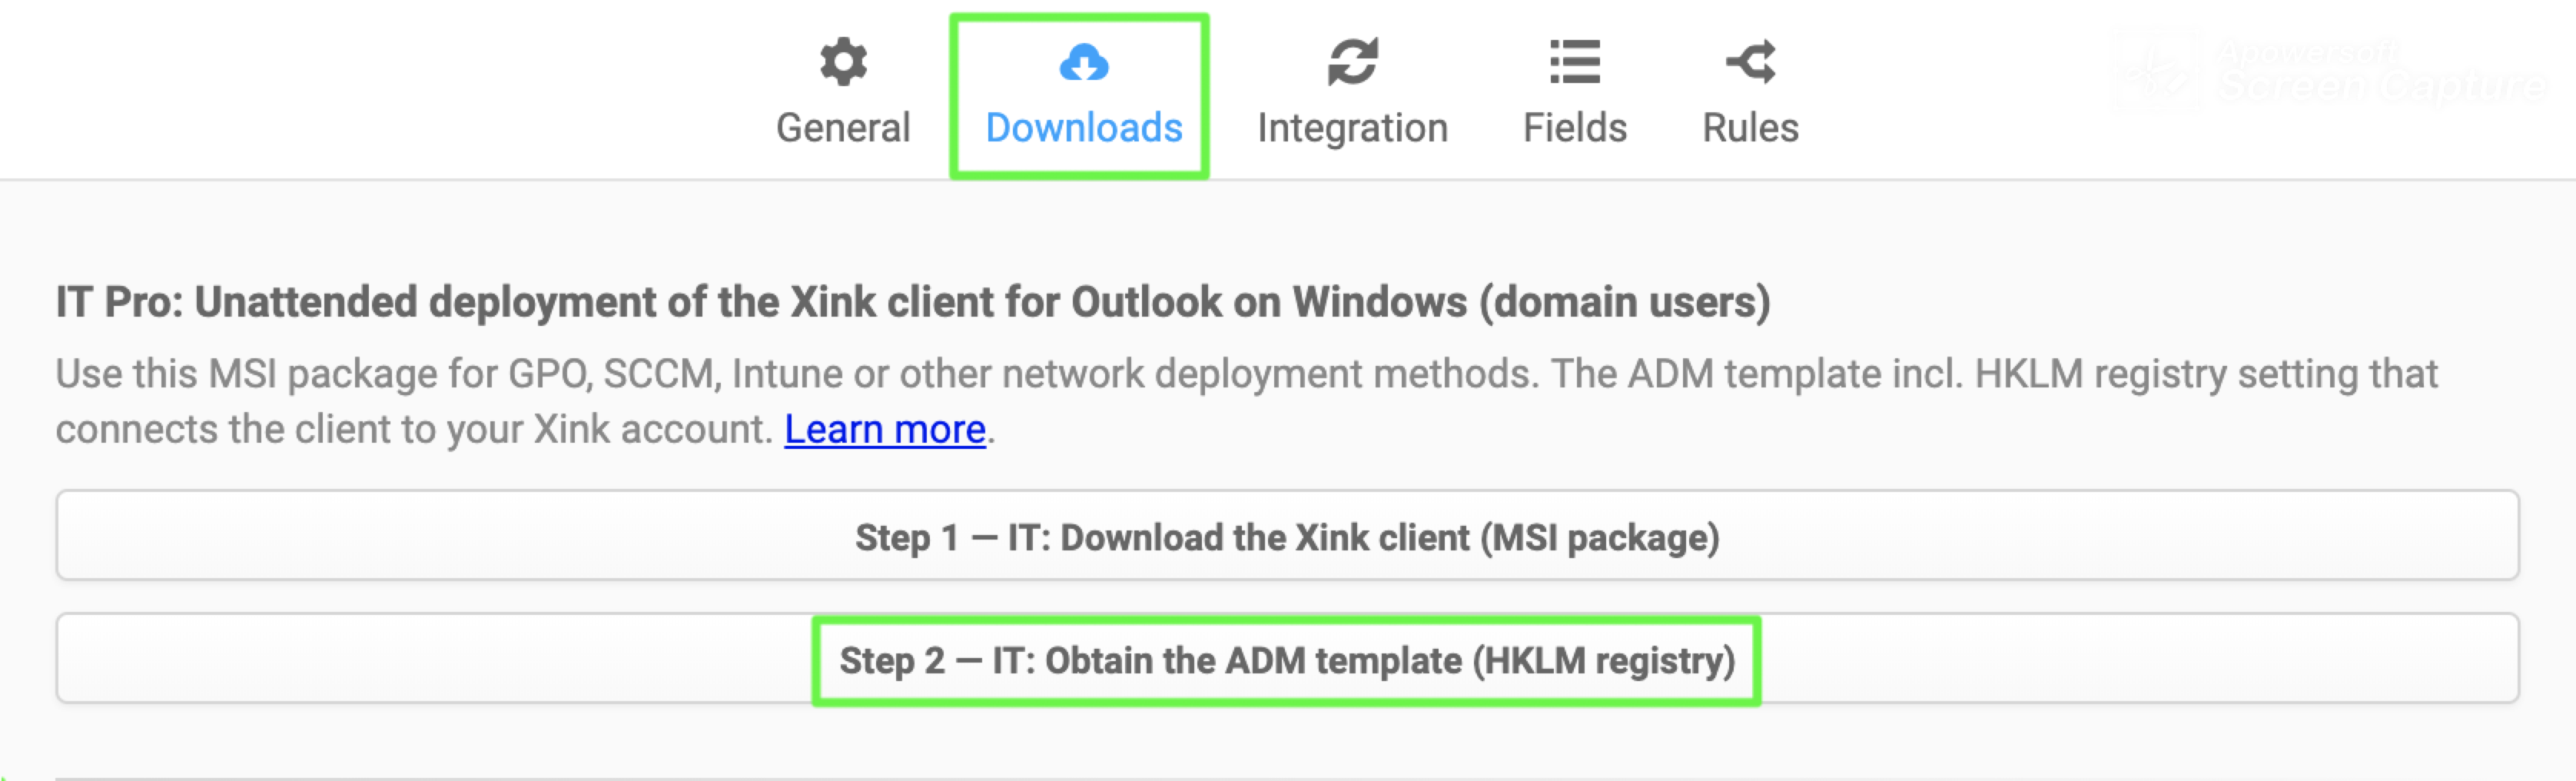 IT Pro: Deploy Xink ADM File via GPO Template (Xink Token ID